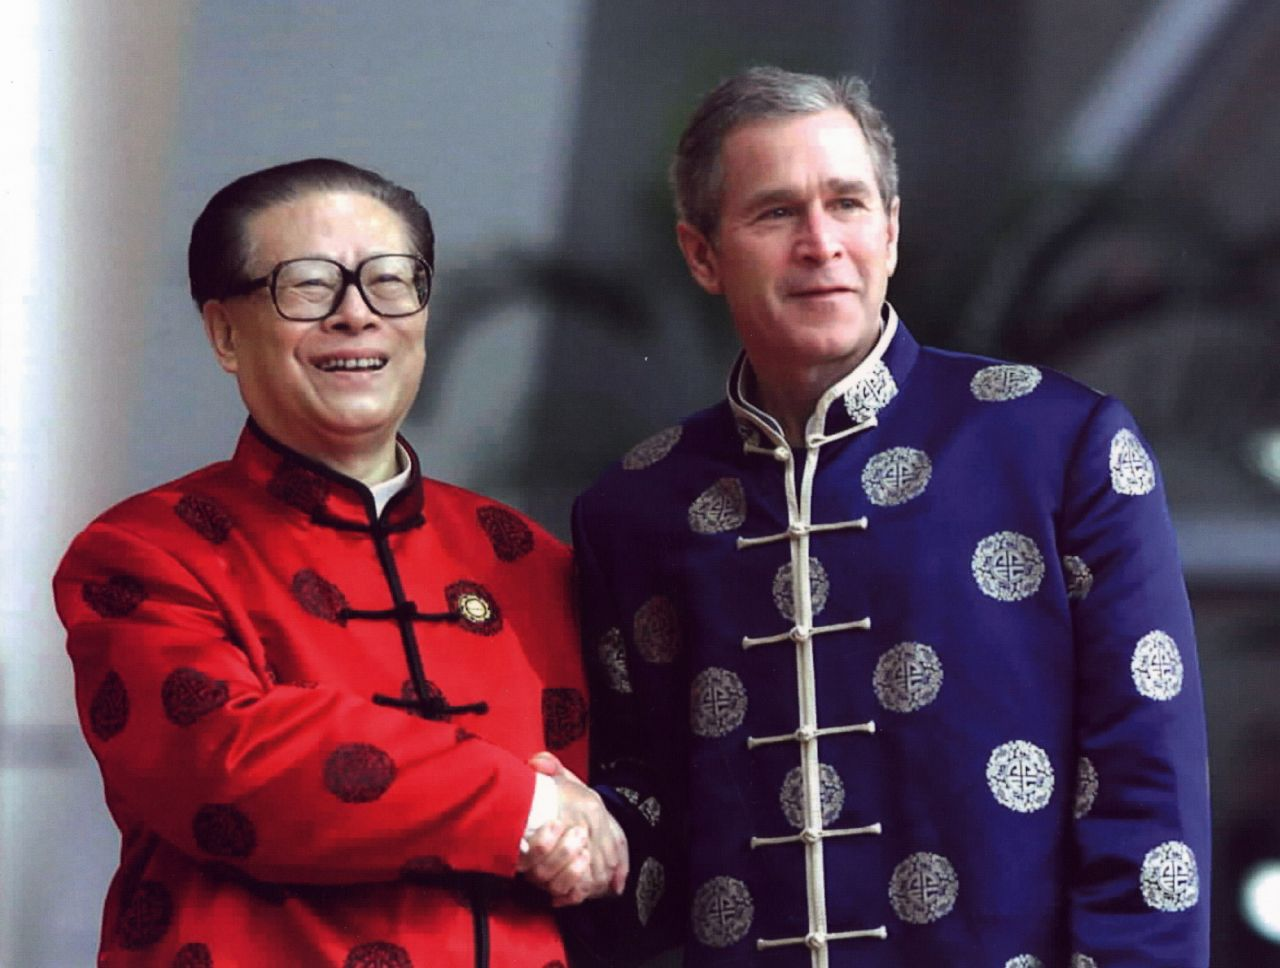 President Jiang Zemin and President George W. Bush at the APEC Economic Leaders' Meeting in Shanghai in October 2001.